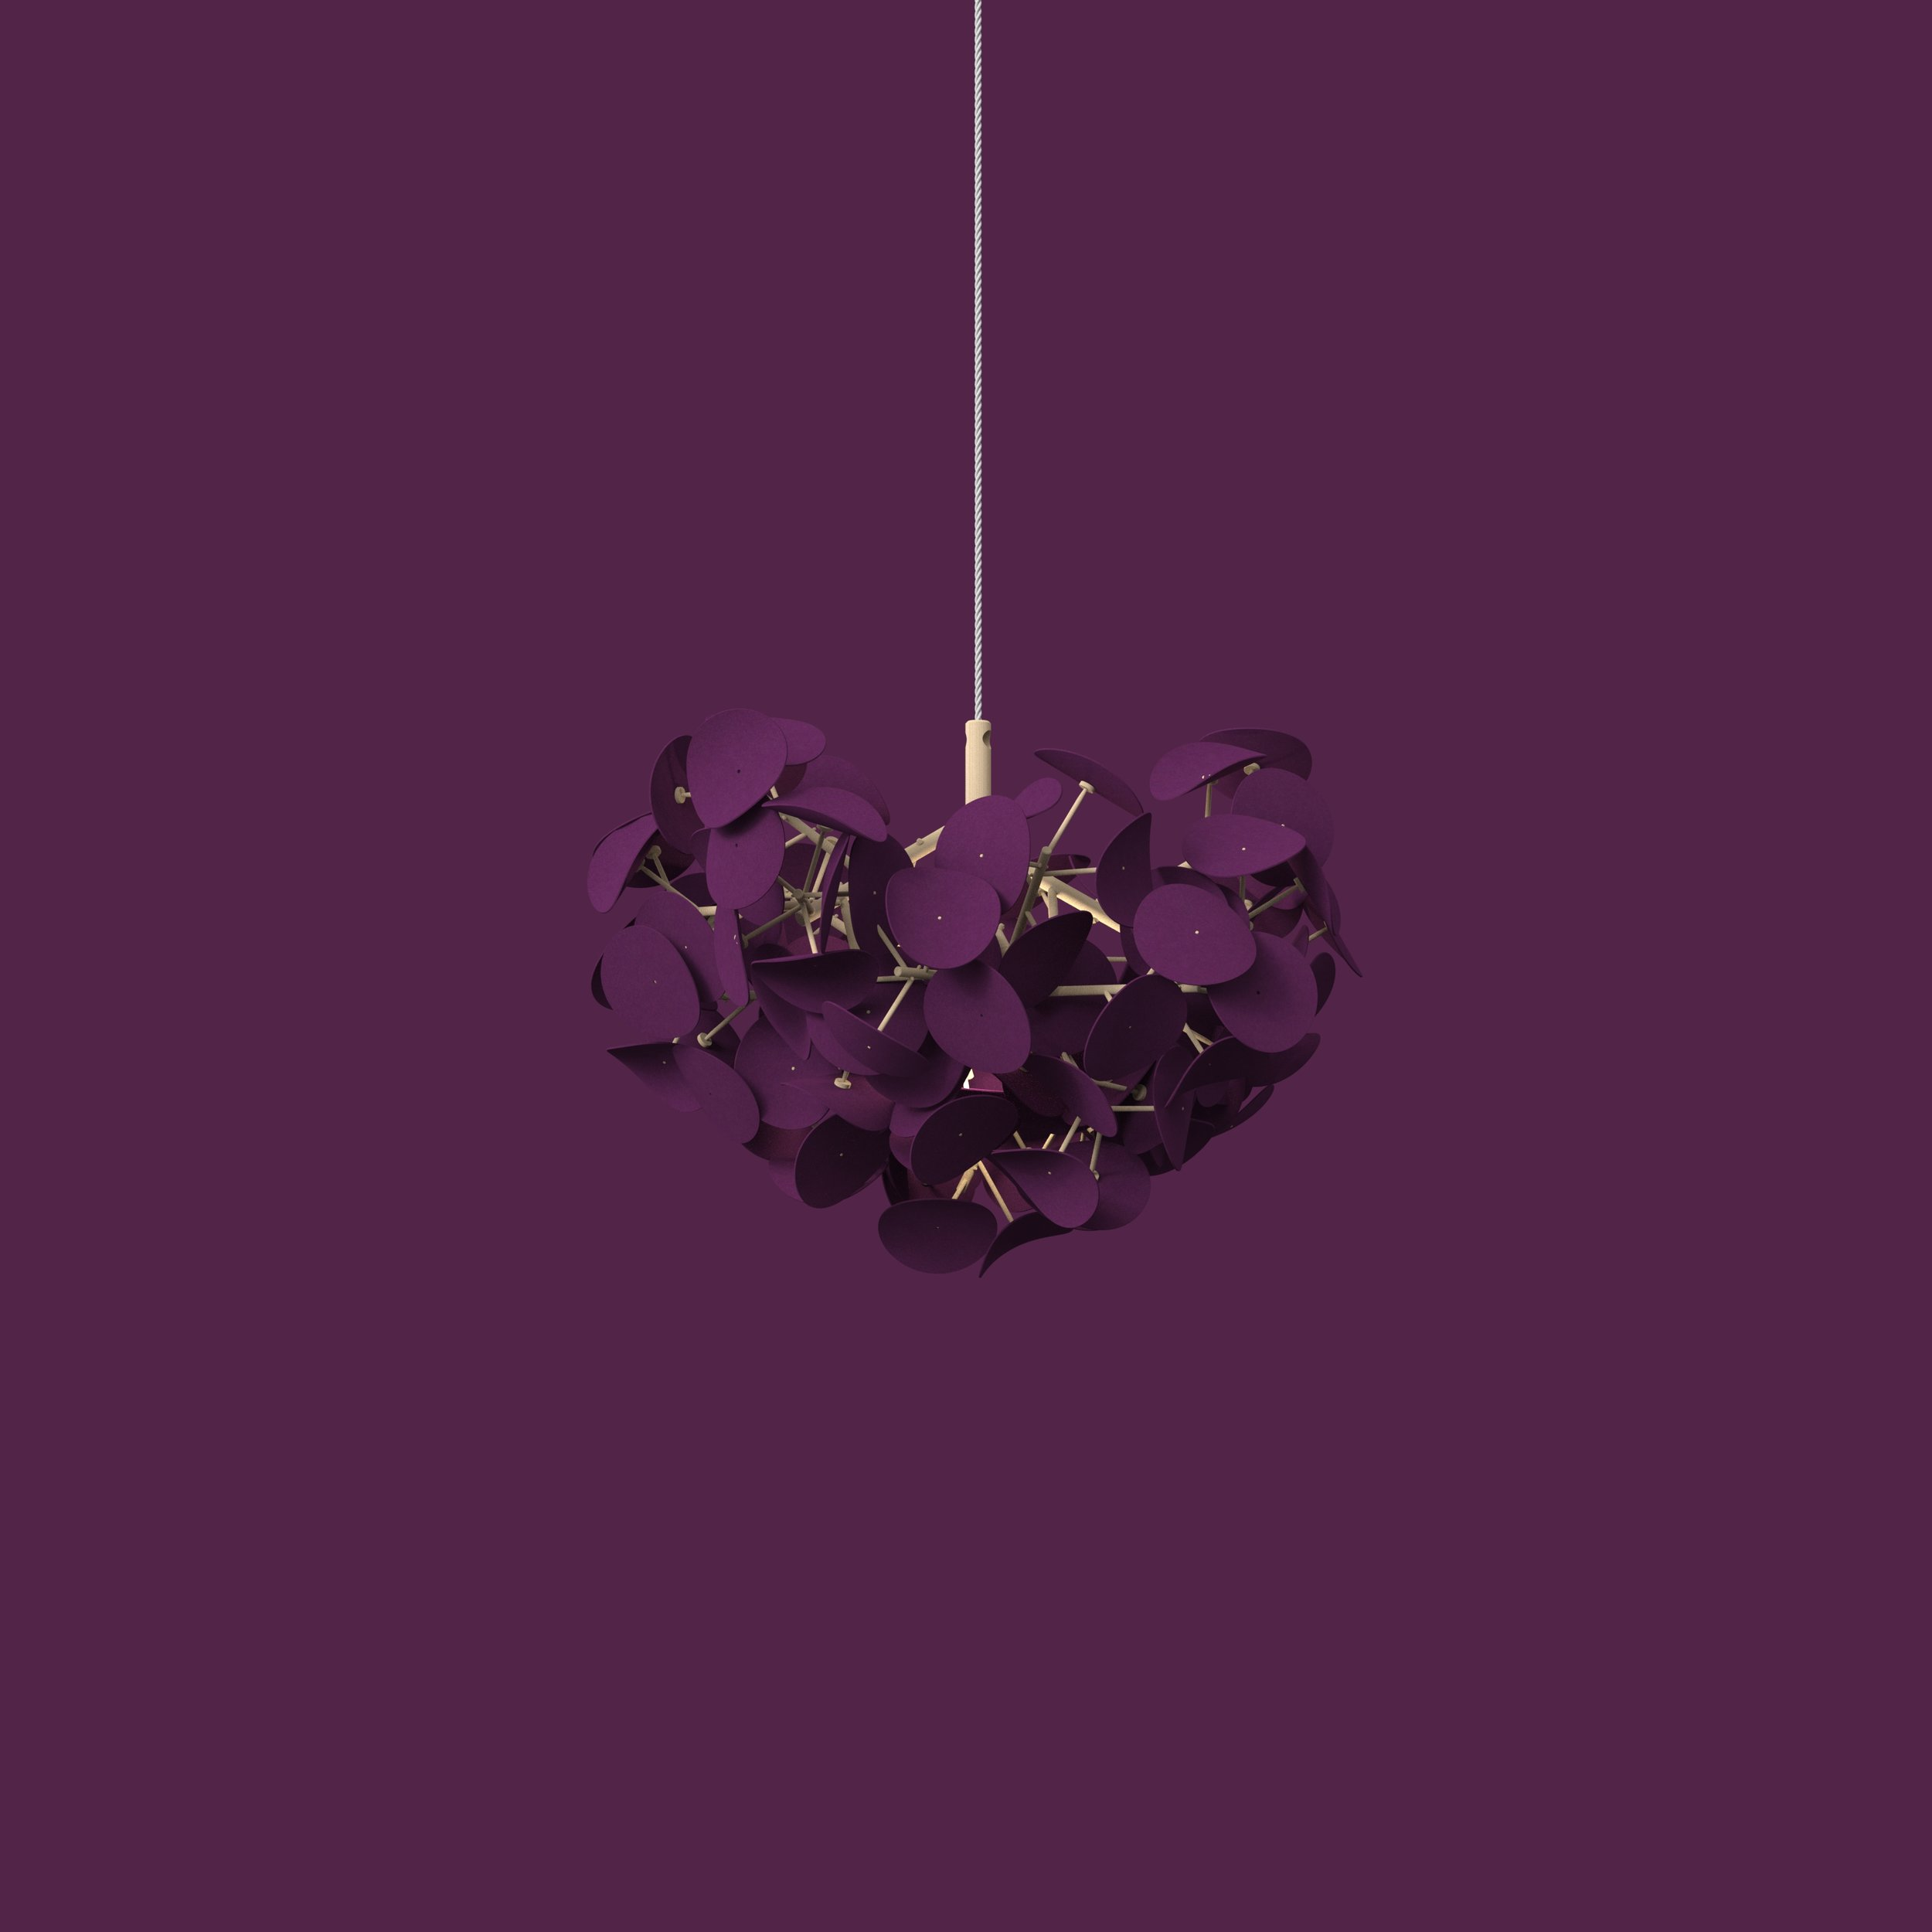 Leaf Lamp Color Precious Plum.jpg